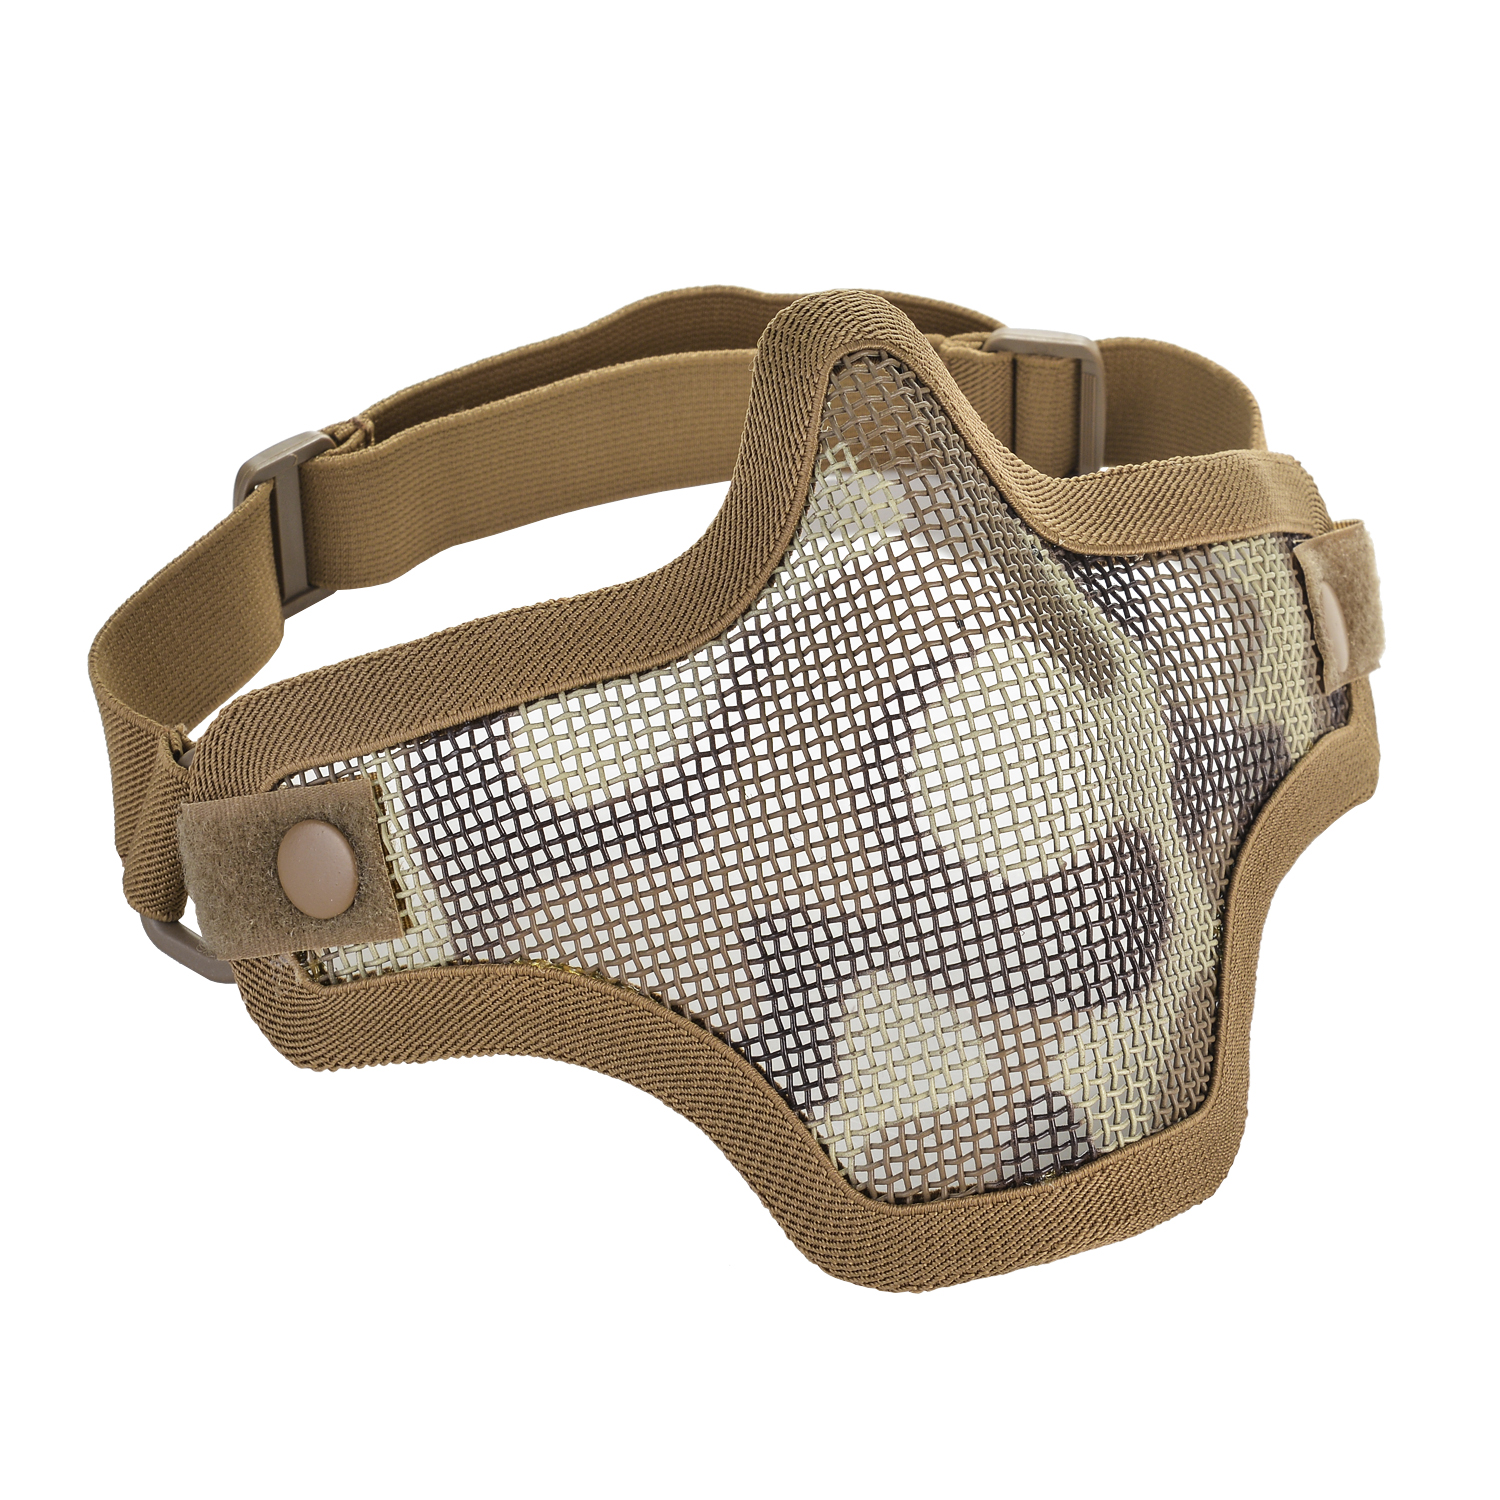 IMage Half Face Mask Tactical Strike Metal Mesh Protective Lower Mask Tan by